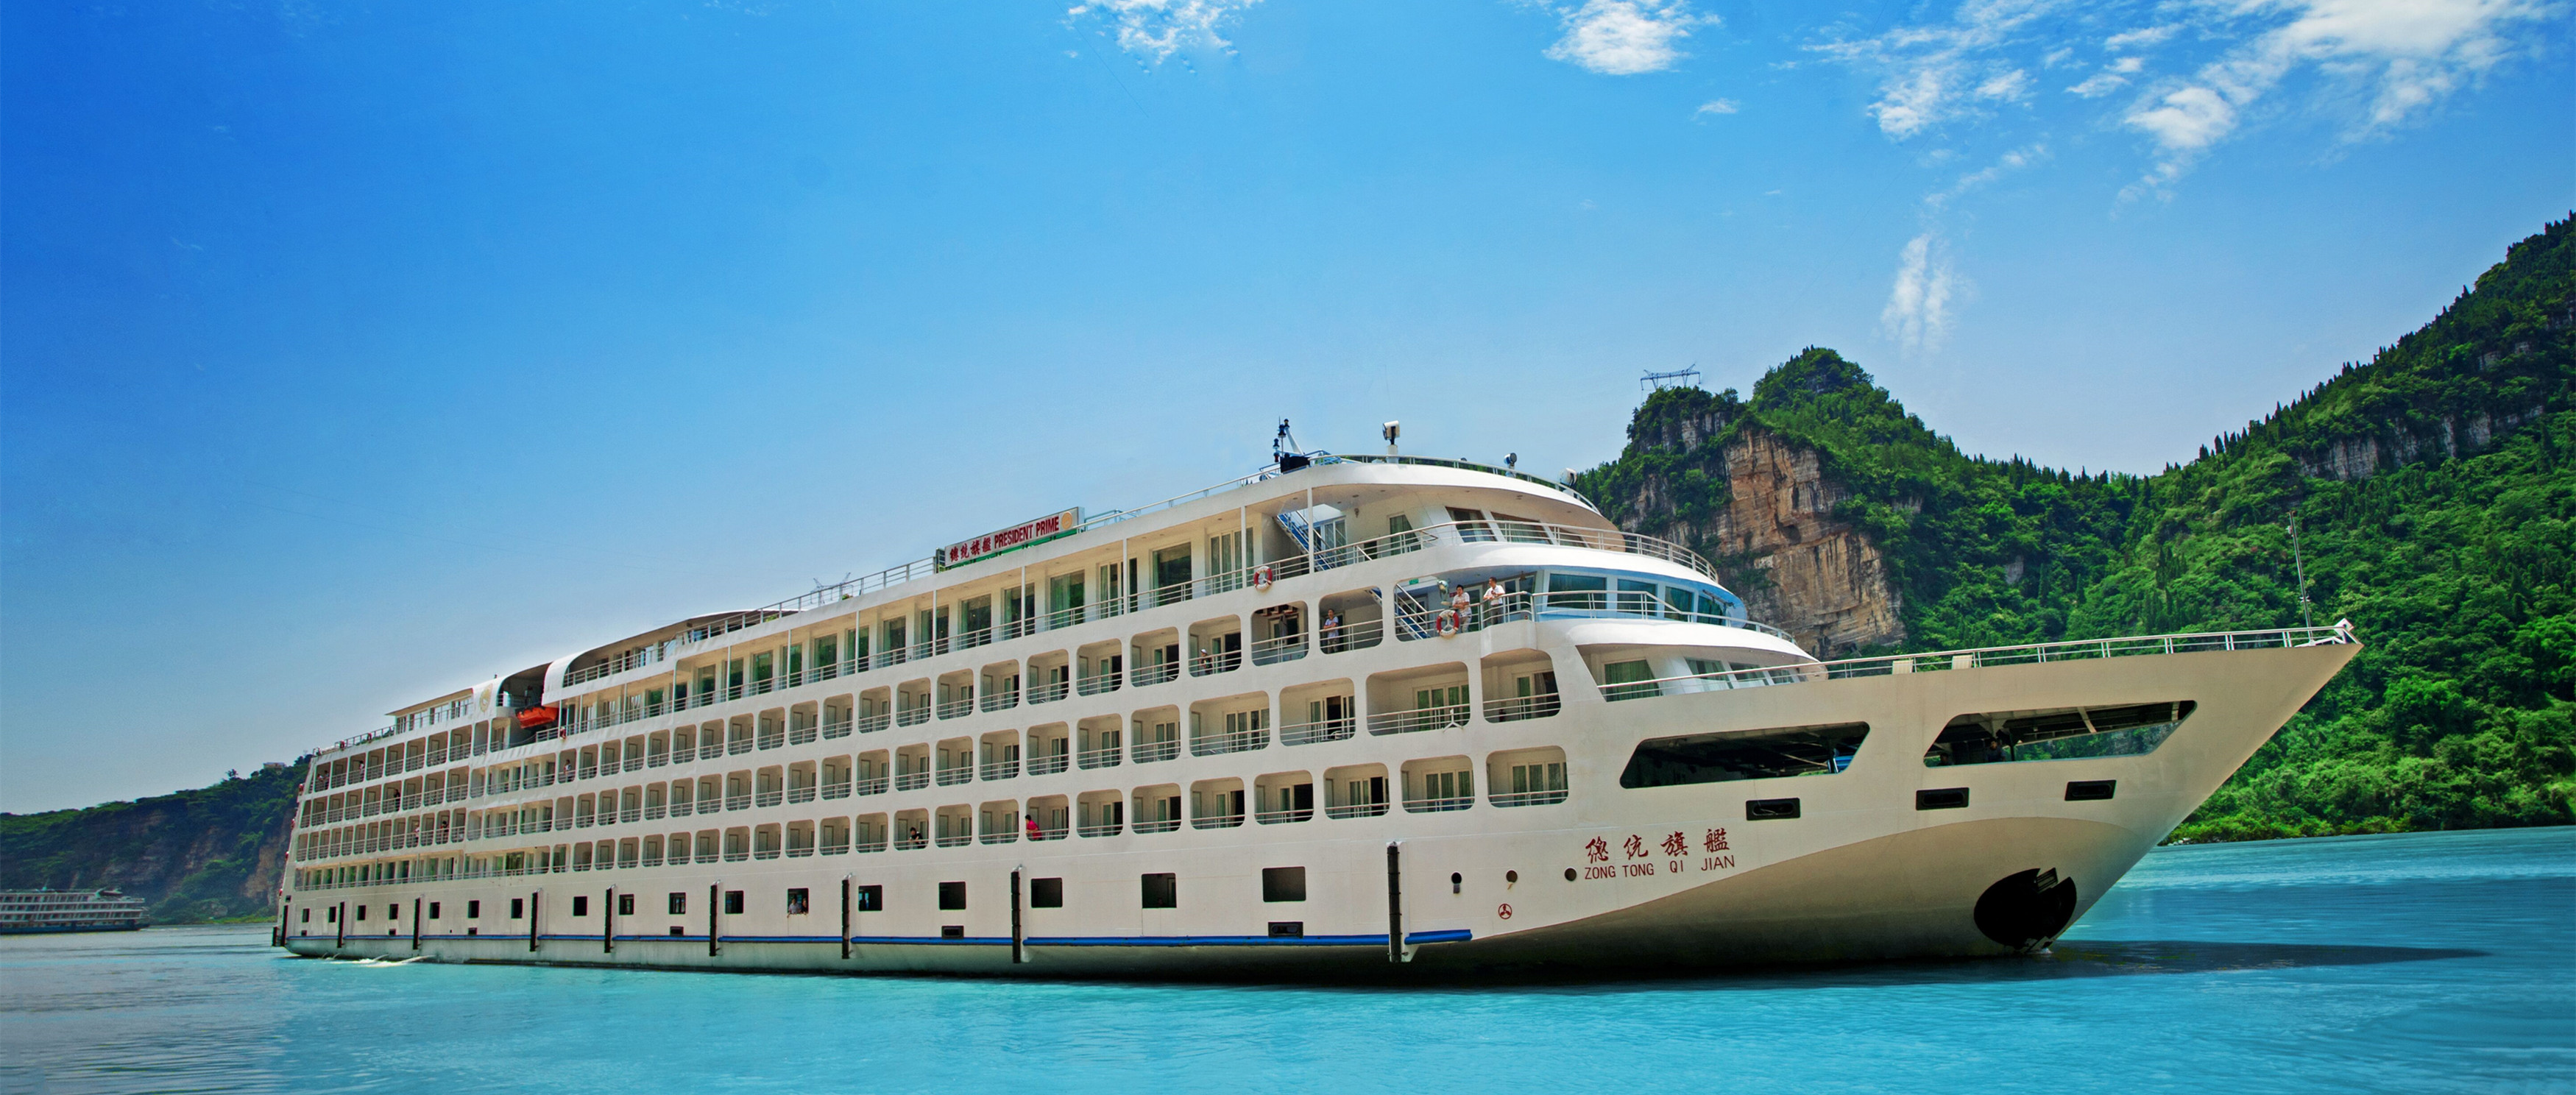 Image result for yangtze river cruise